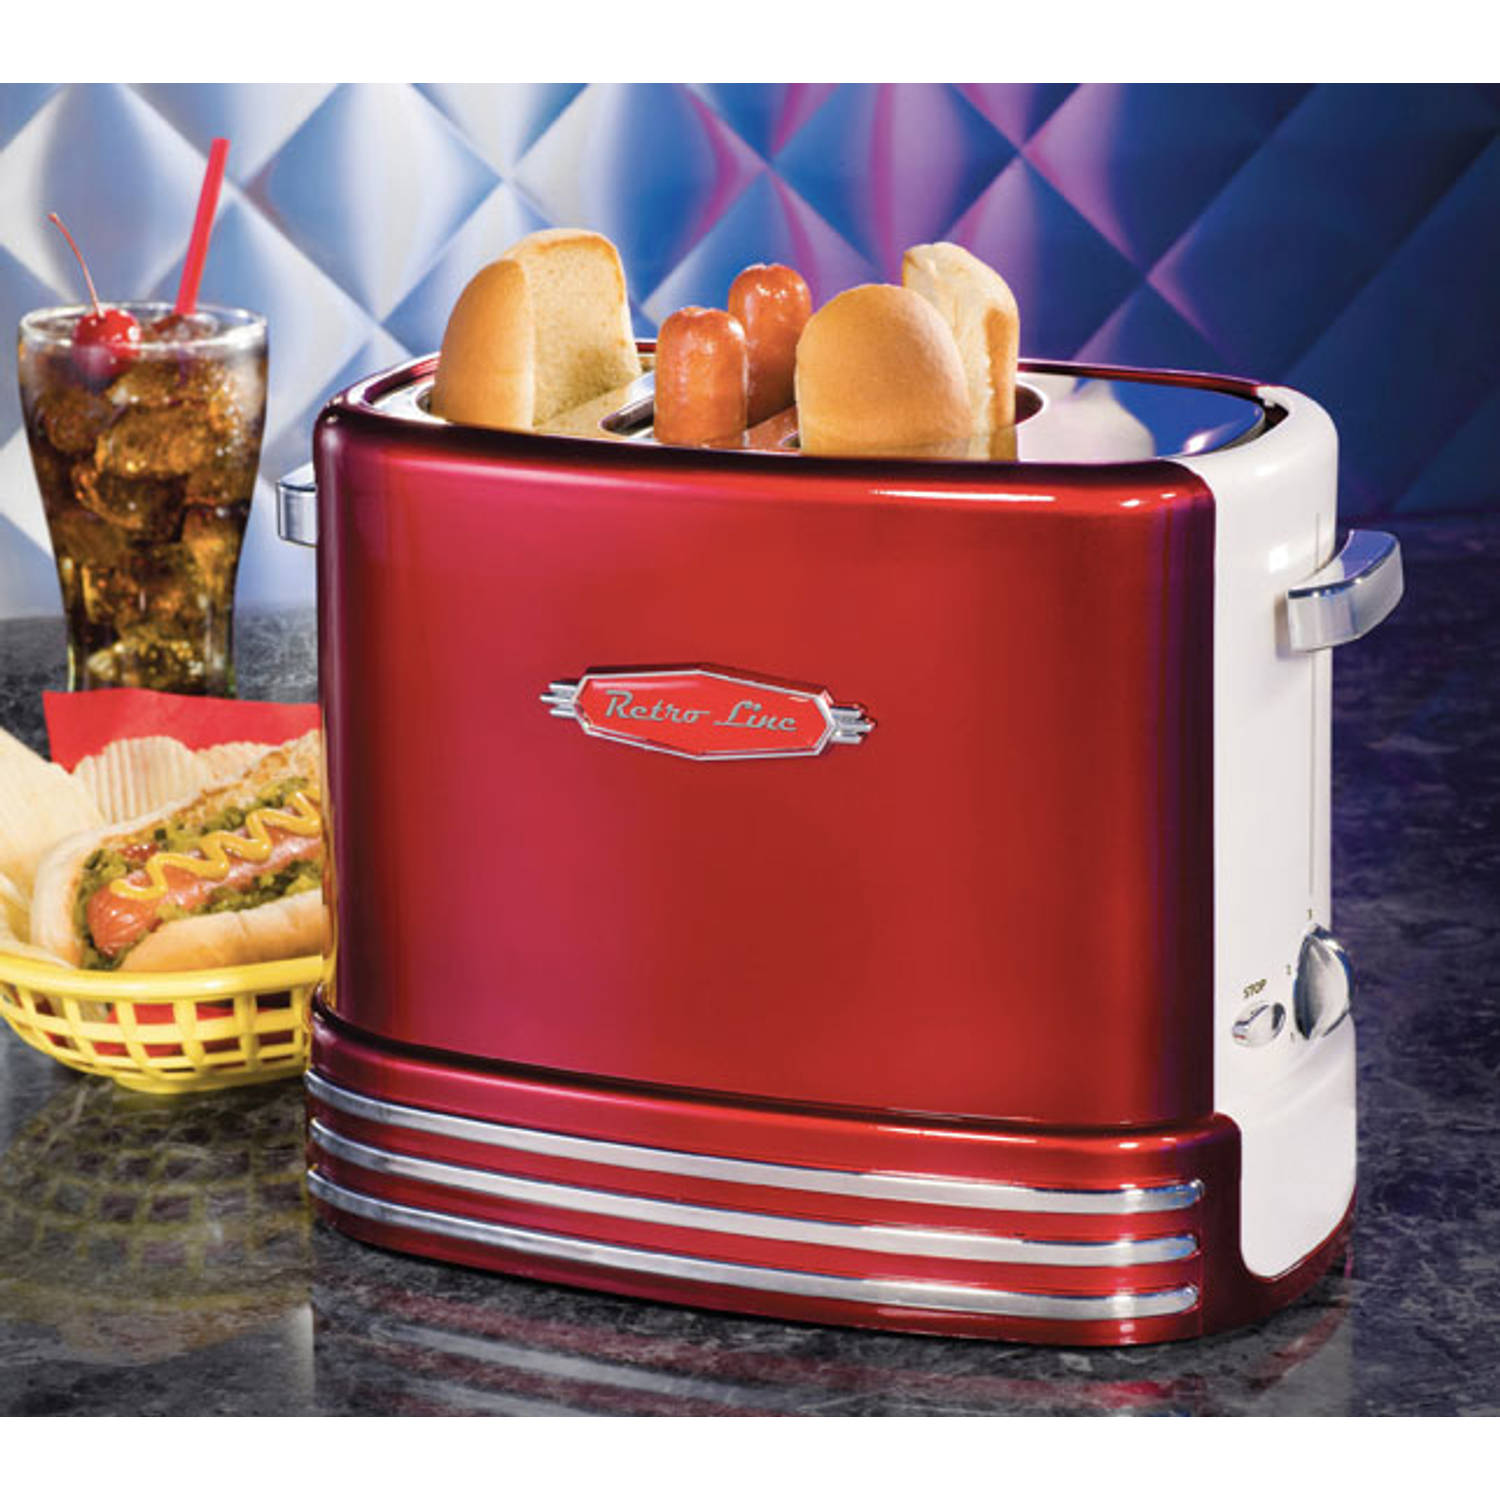 Retro Line Hot Dog Machine Pop-Up Toaster 2